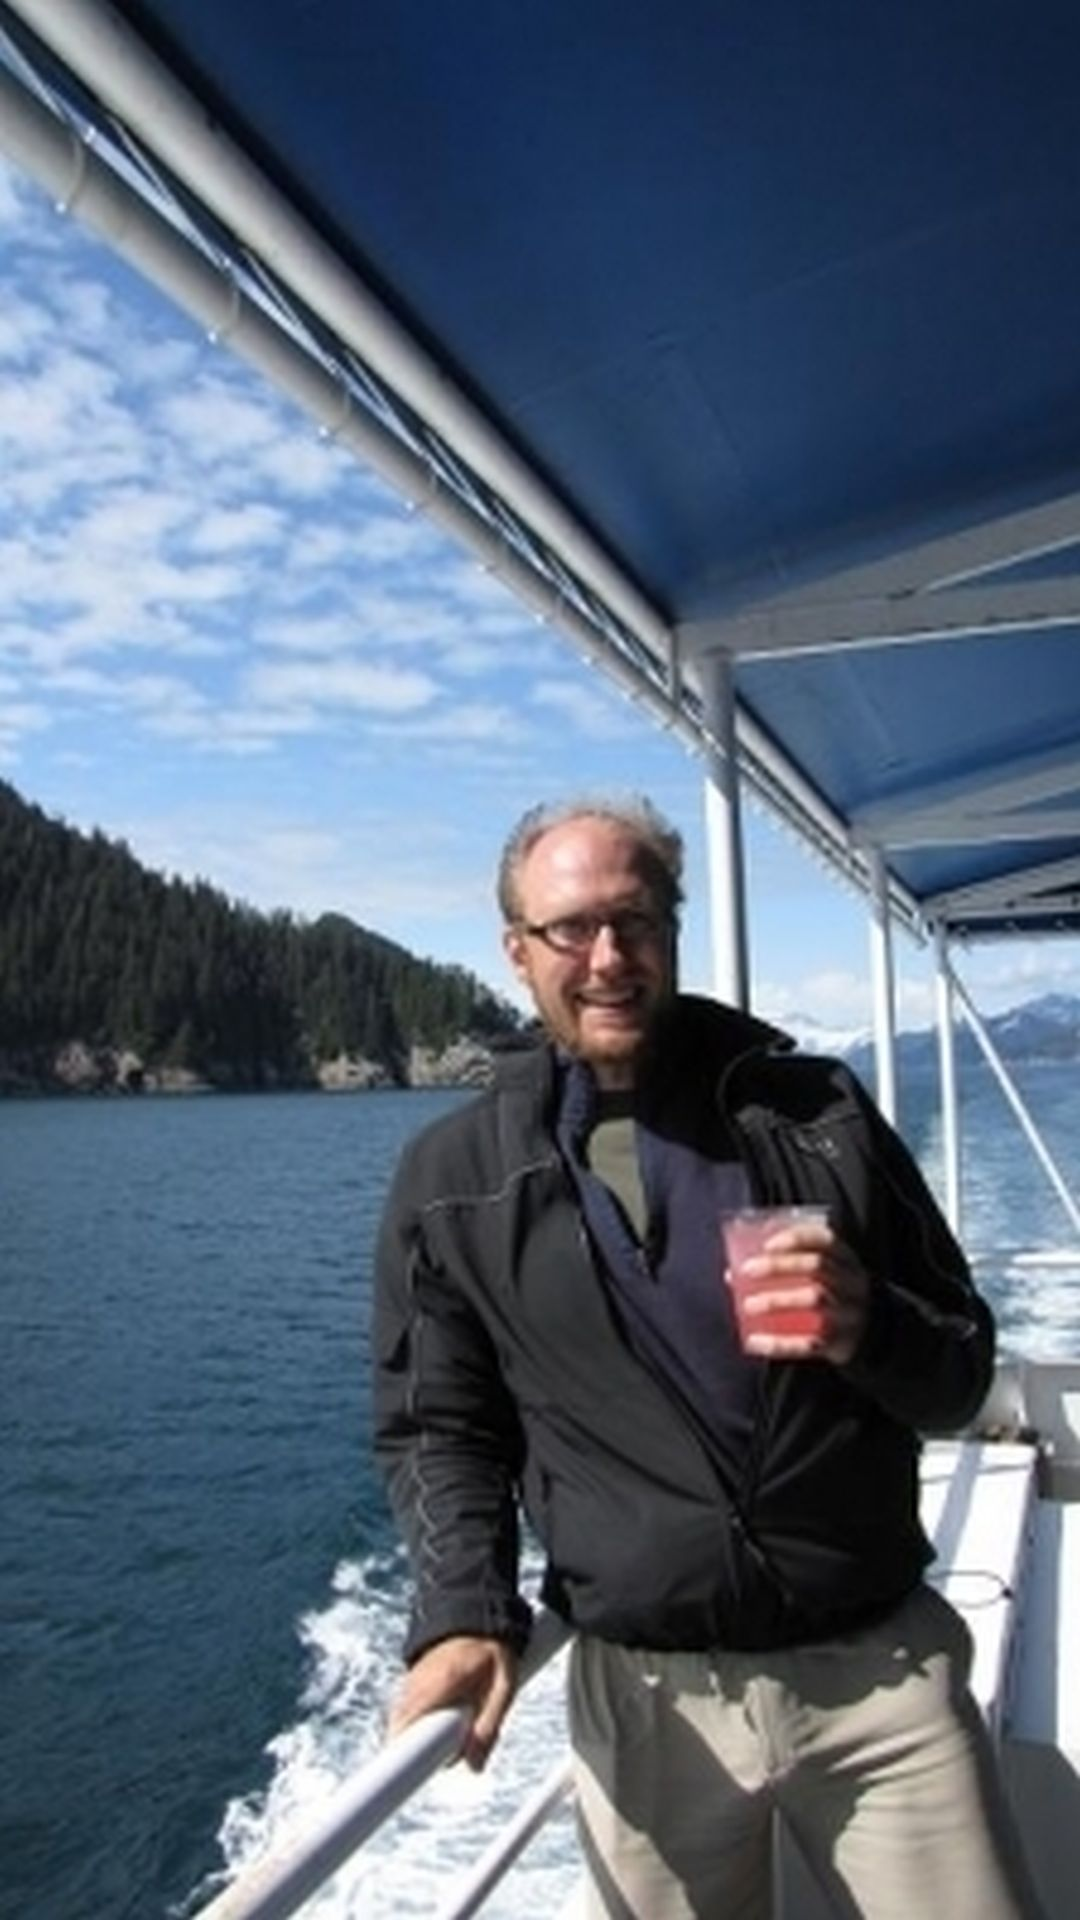 Seward Glacier Cruise - my very own 'gin palace'